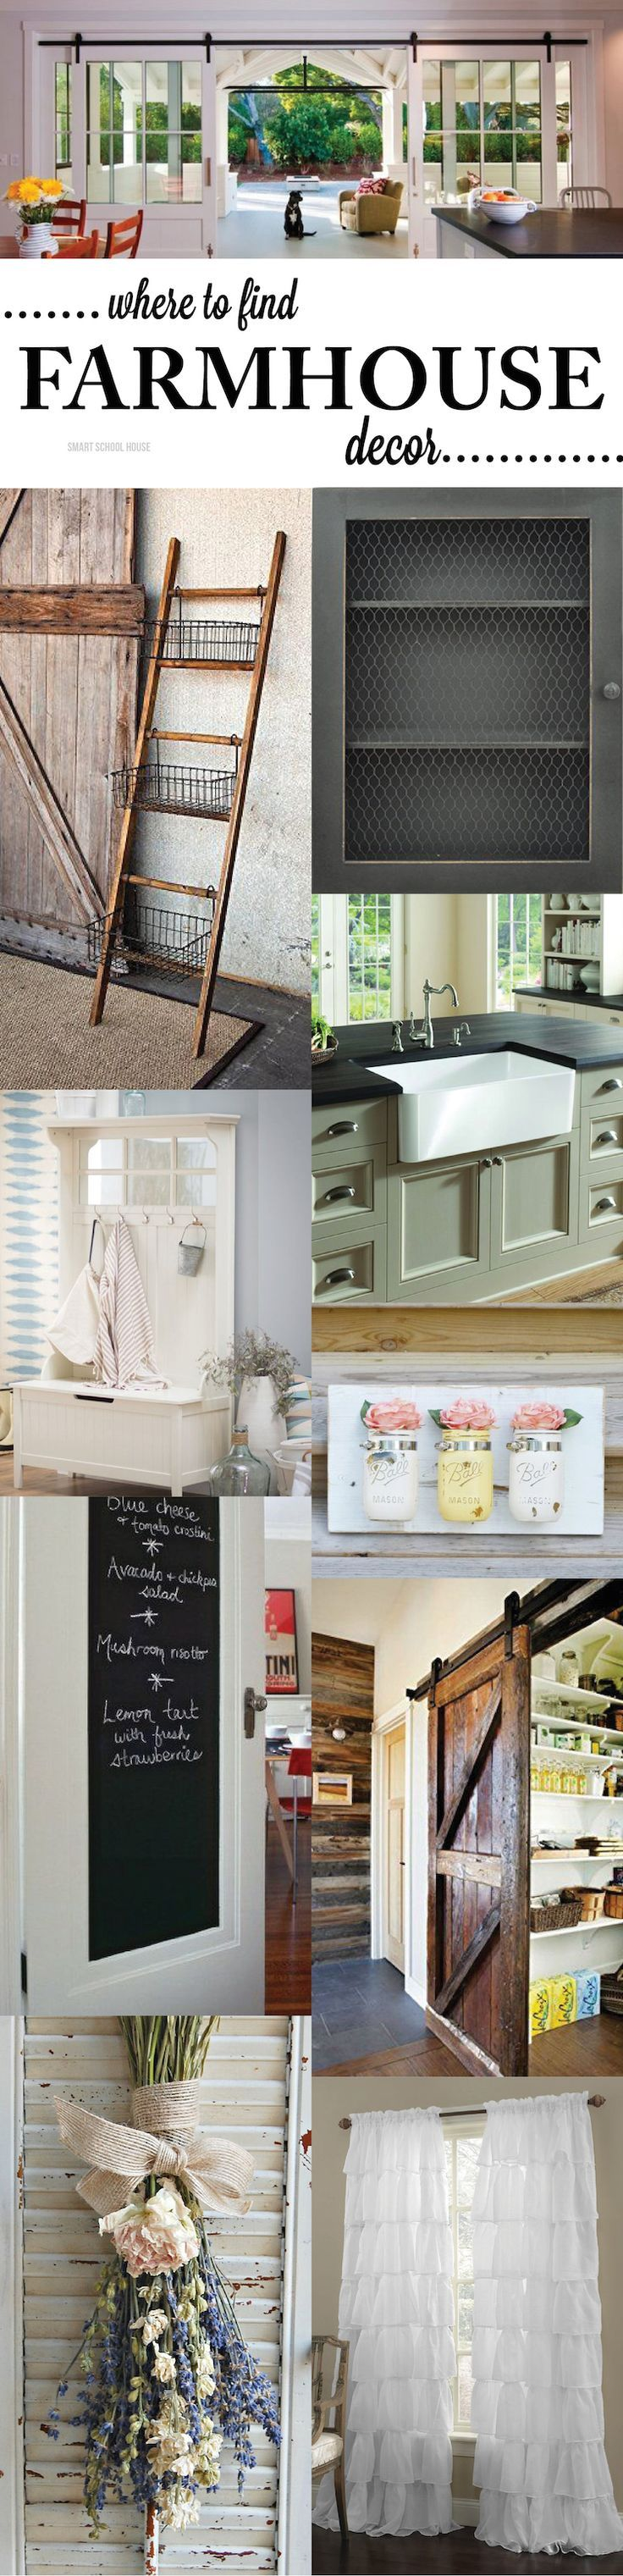 37 best French Farmhouse images on Pinterest | Home ideas, Farmhouse Farmhouse Interior Designs E A on farmhouse vintage finds, parisian home design, farmhouse stair design, farmhouse architect, modern country design, farmhouse bathroom sinks and countertops, farmhouse ceiling designs, modern farmhouse design, farmhouse roof design, farmhouse fireplace design, farmhouse landscaping, farmhouse building designs, farmhouse patio design, farmhouse library, farmhouse pool design, farmhouse exteriors, farmhouse architectural details, farmhouse bathroom remodeling, farmhouse kitchen, farmhouse design elements,